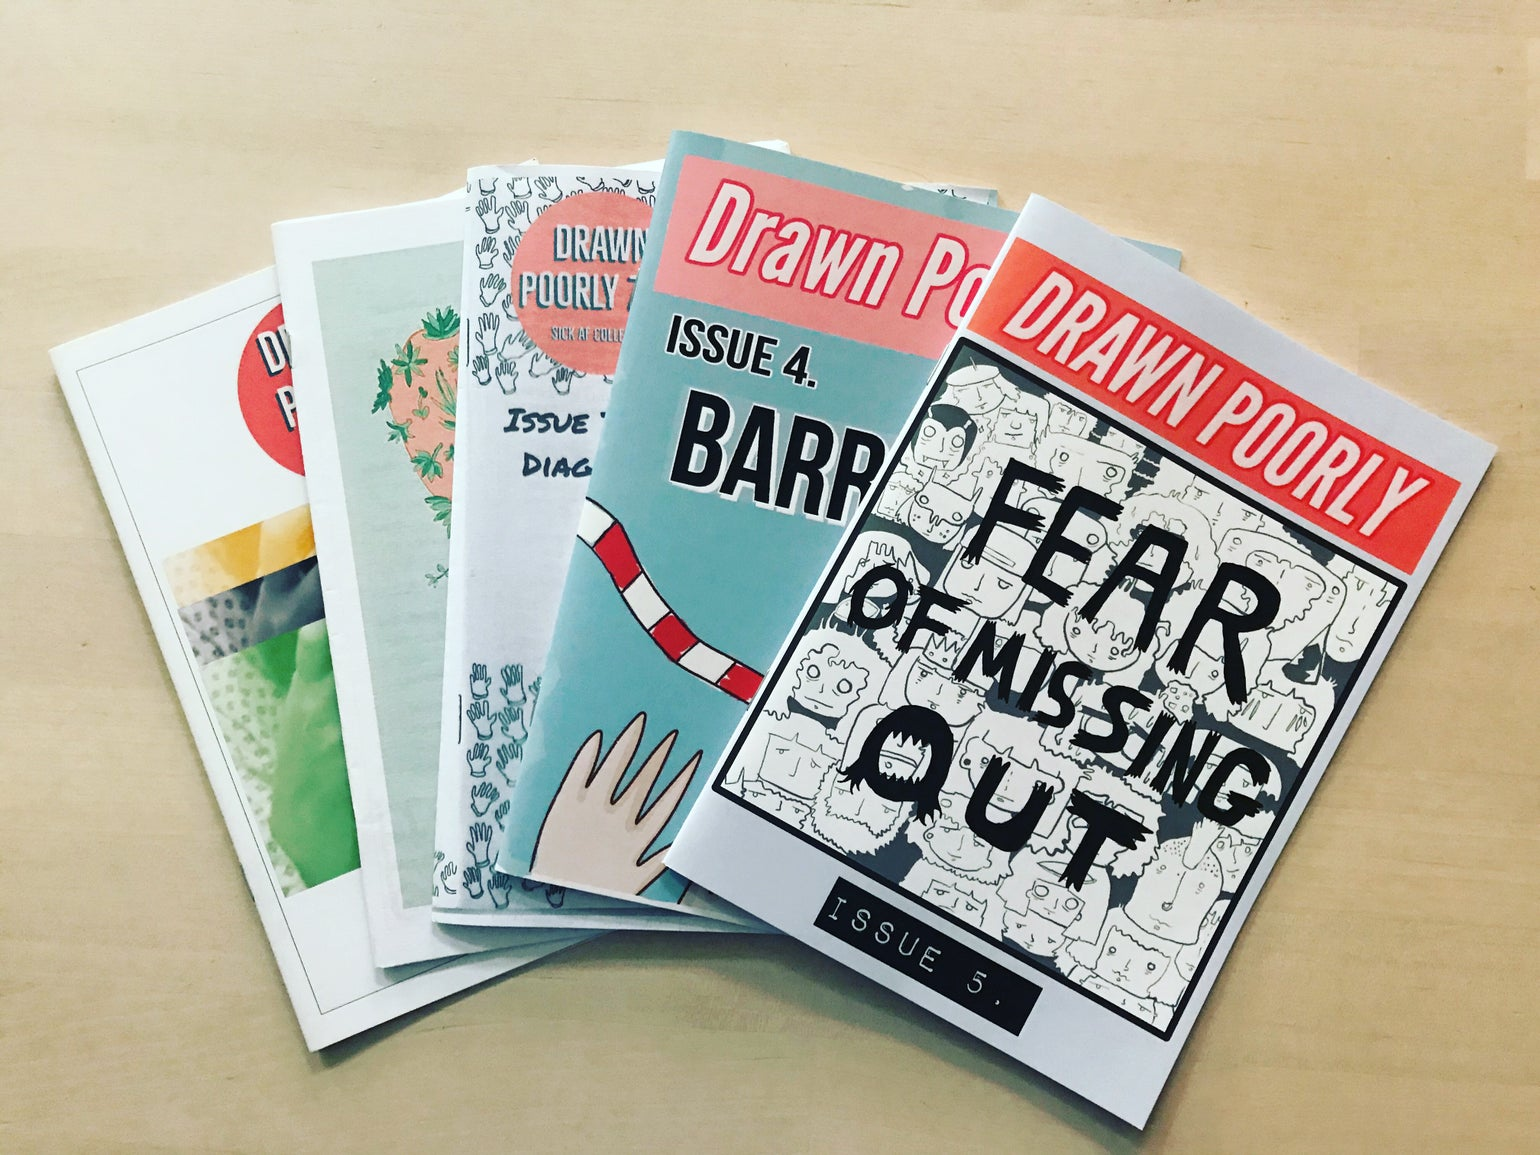 Image of Drawn Poorly Zine issues 1-5